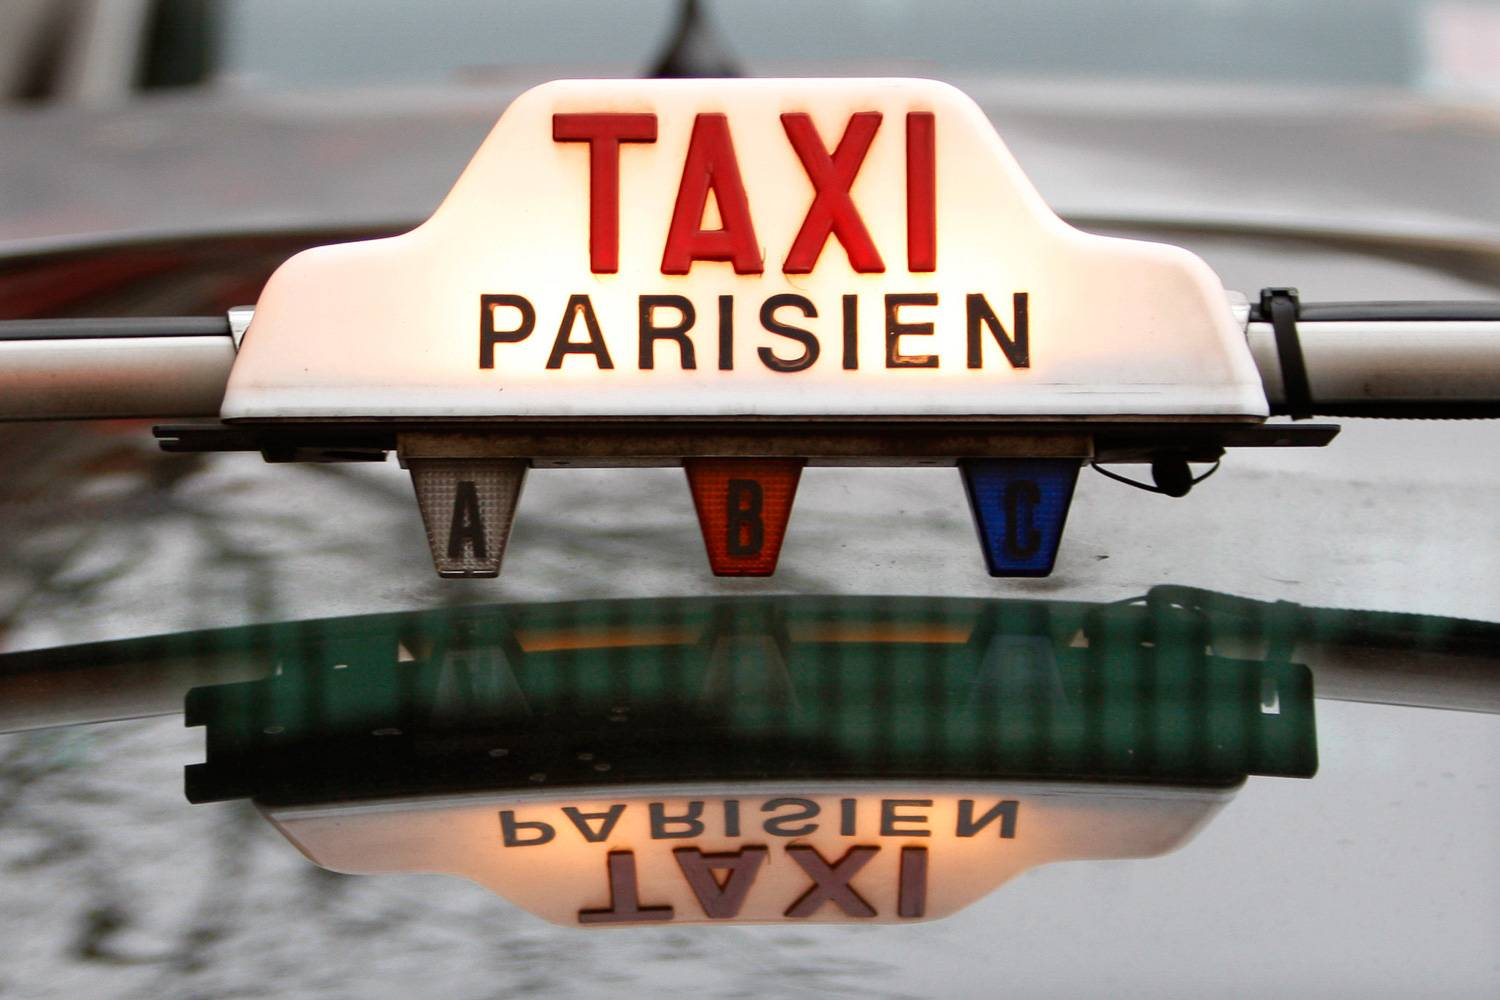 Image of illuminated Taxi Parisien sign on the roof of a Paris taxi.